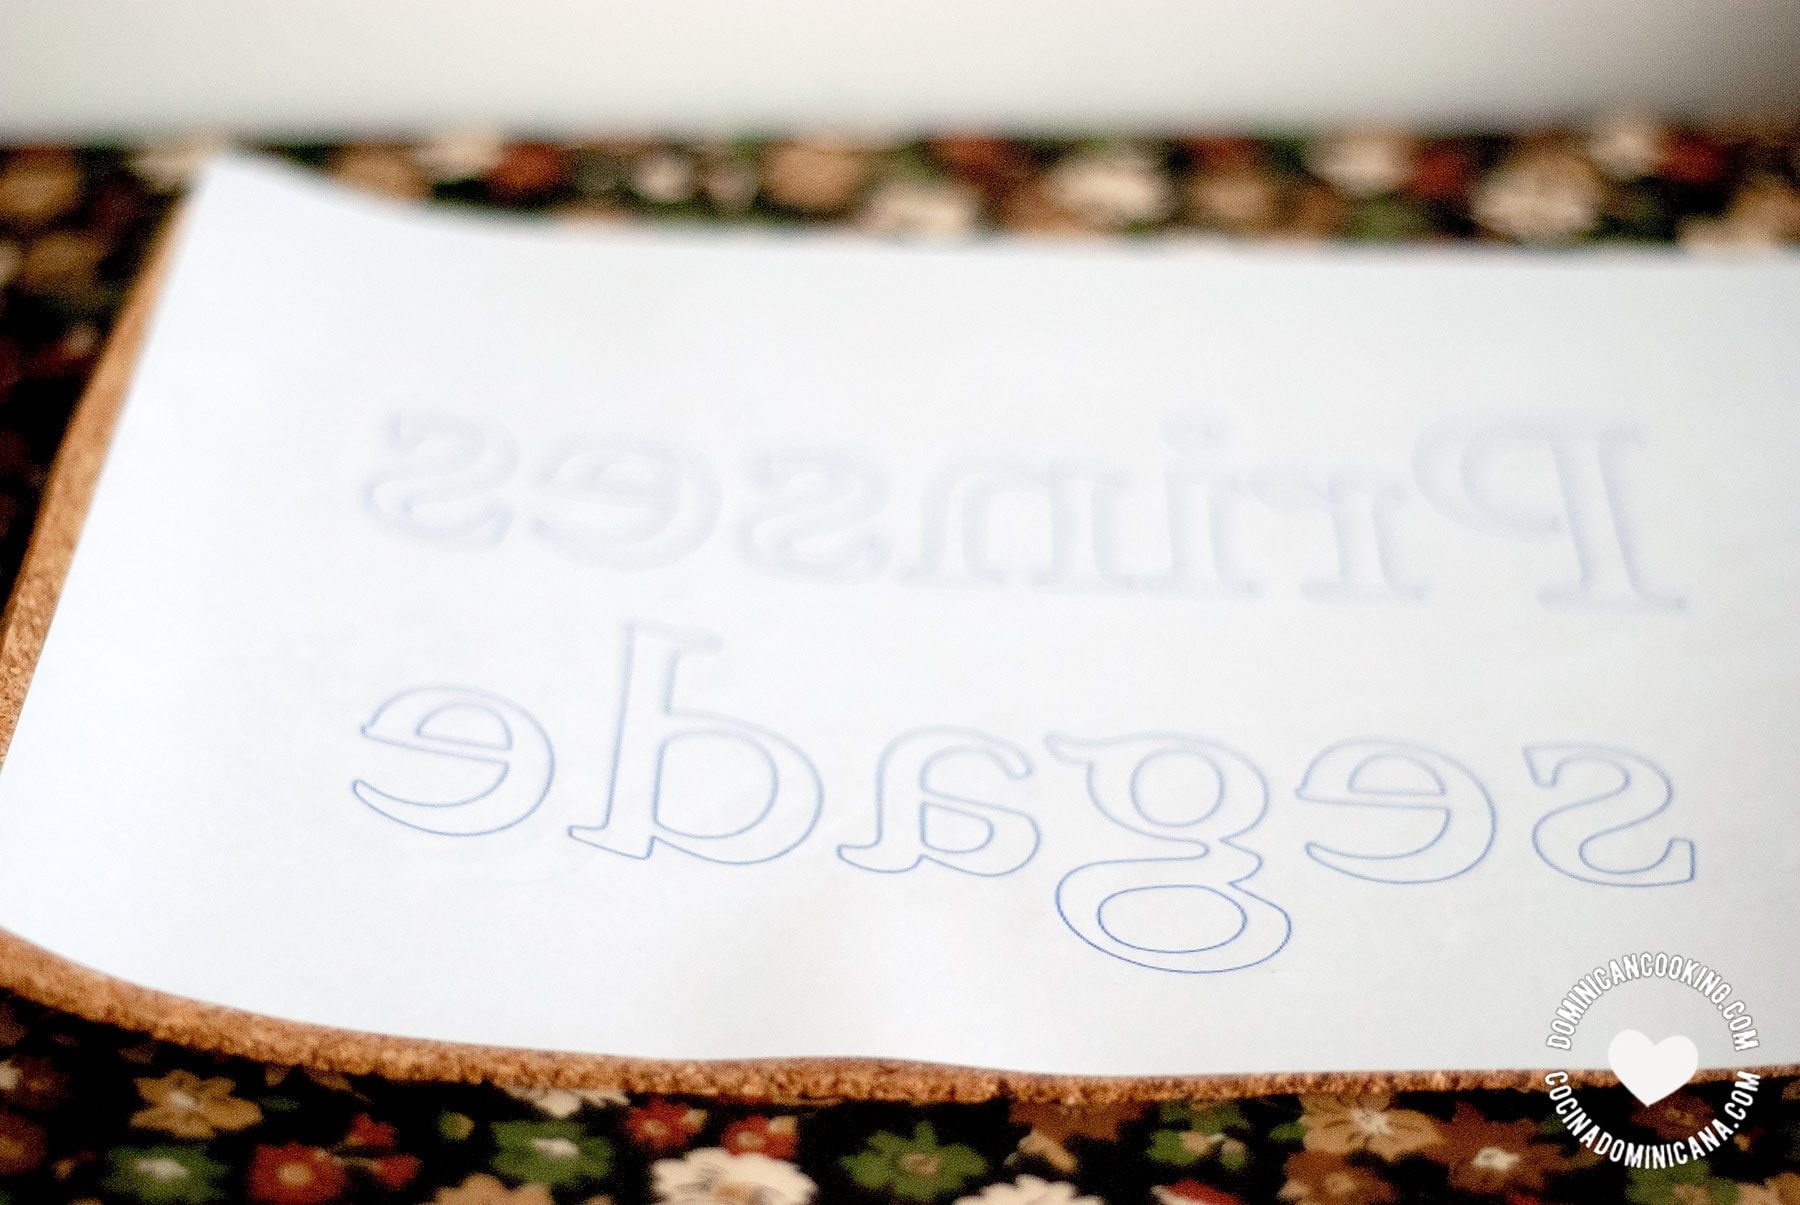 Print and glue text